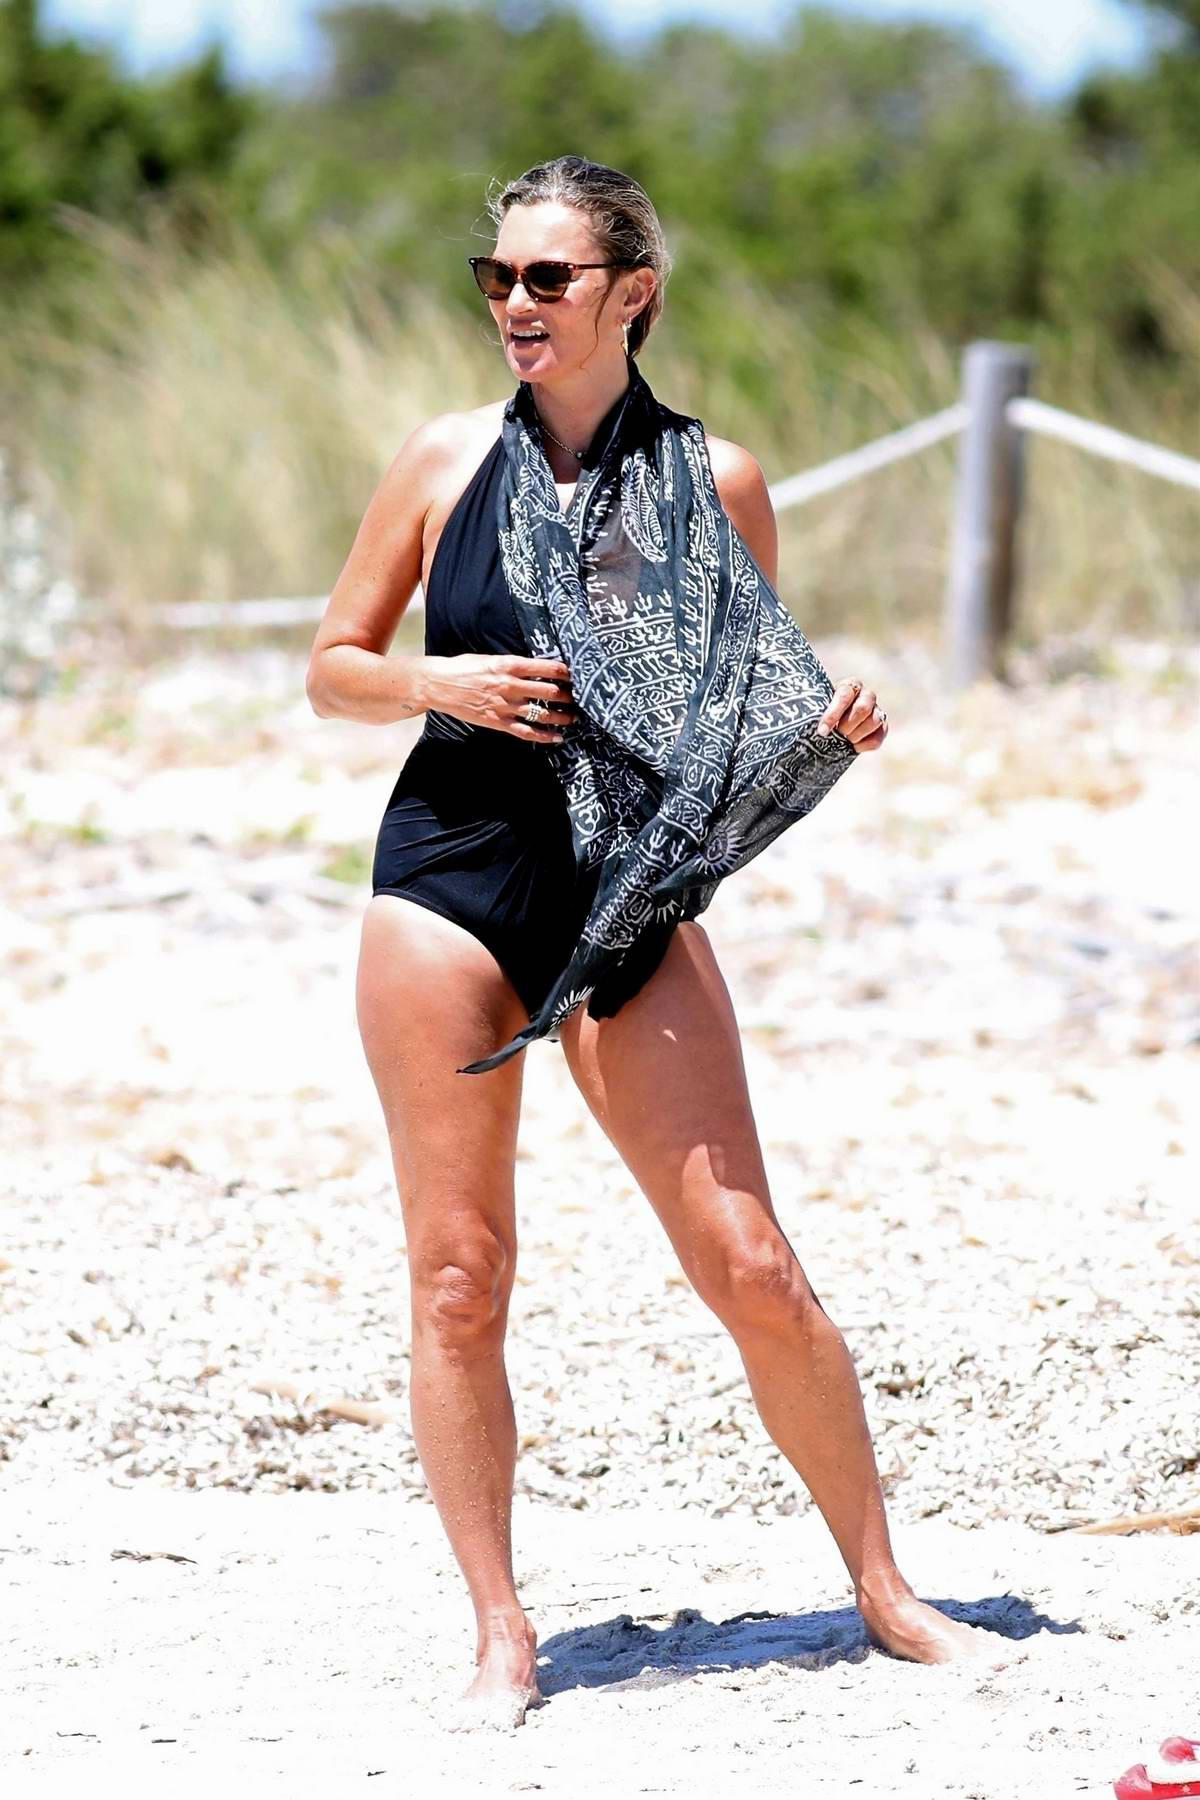 Kate Moss spotted in a black swimsuit while on the beach during a summer holiday in Formentera, Spain